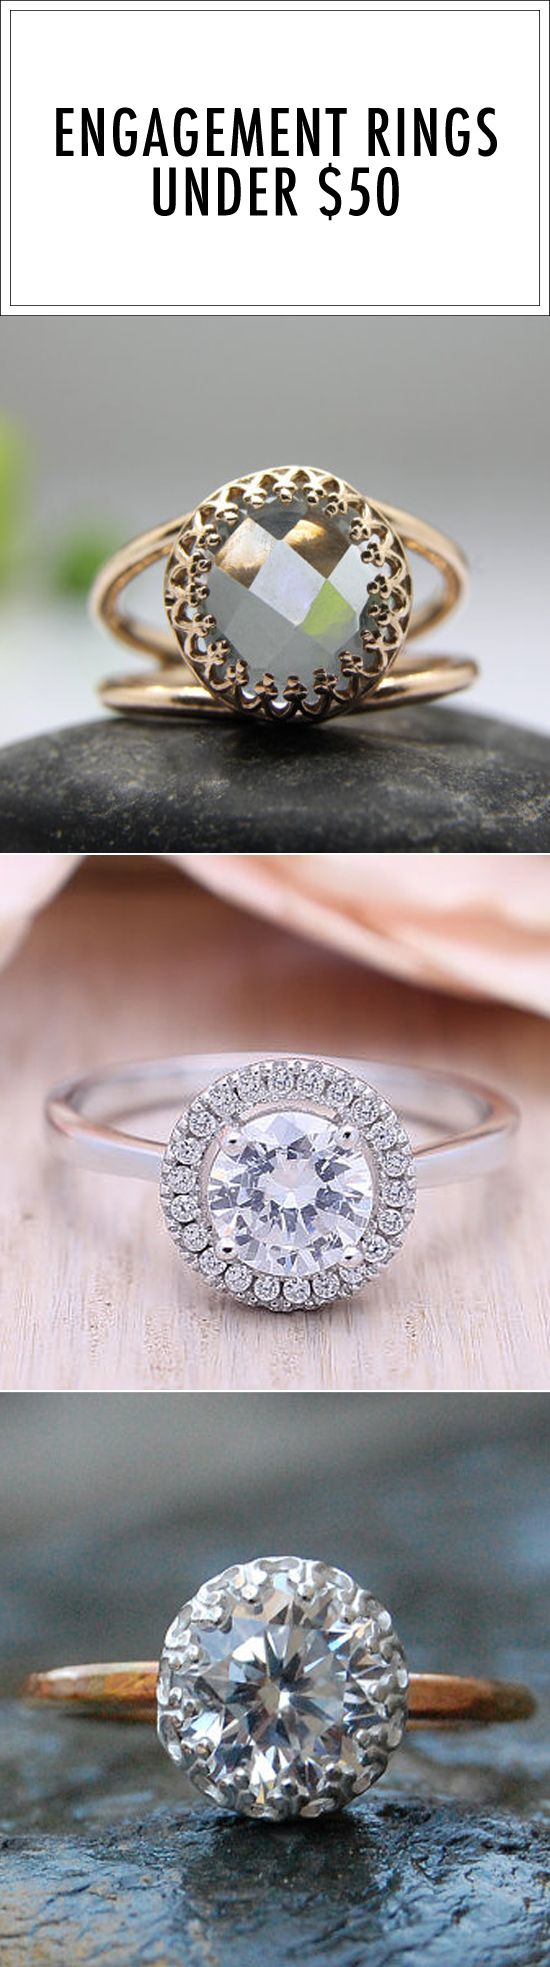 inexpensive wedding rings discount wedding rings 26 Stunning Engagement Rings That Cost Under 50